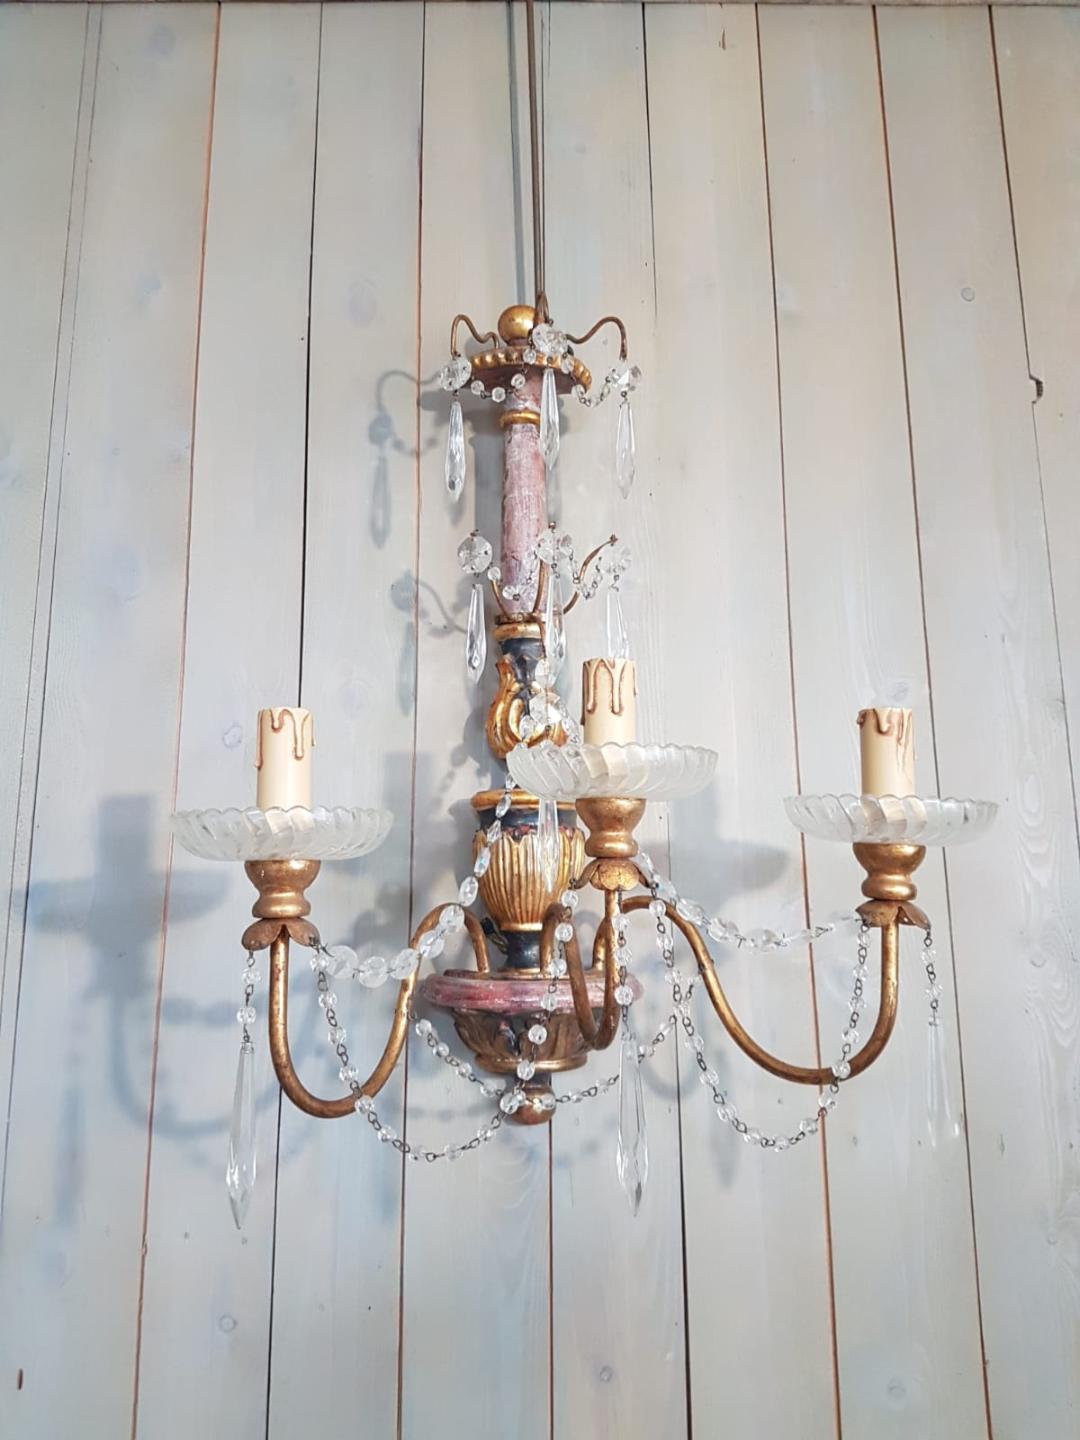 #5544-AGG - Single Sconce